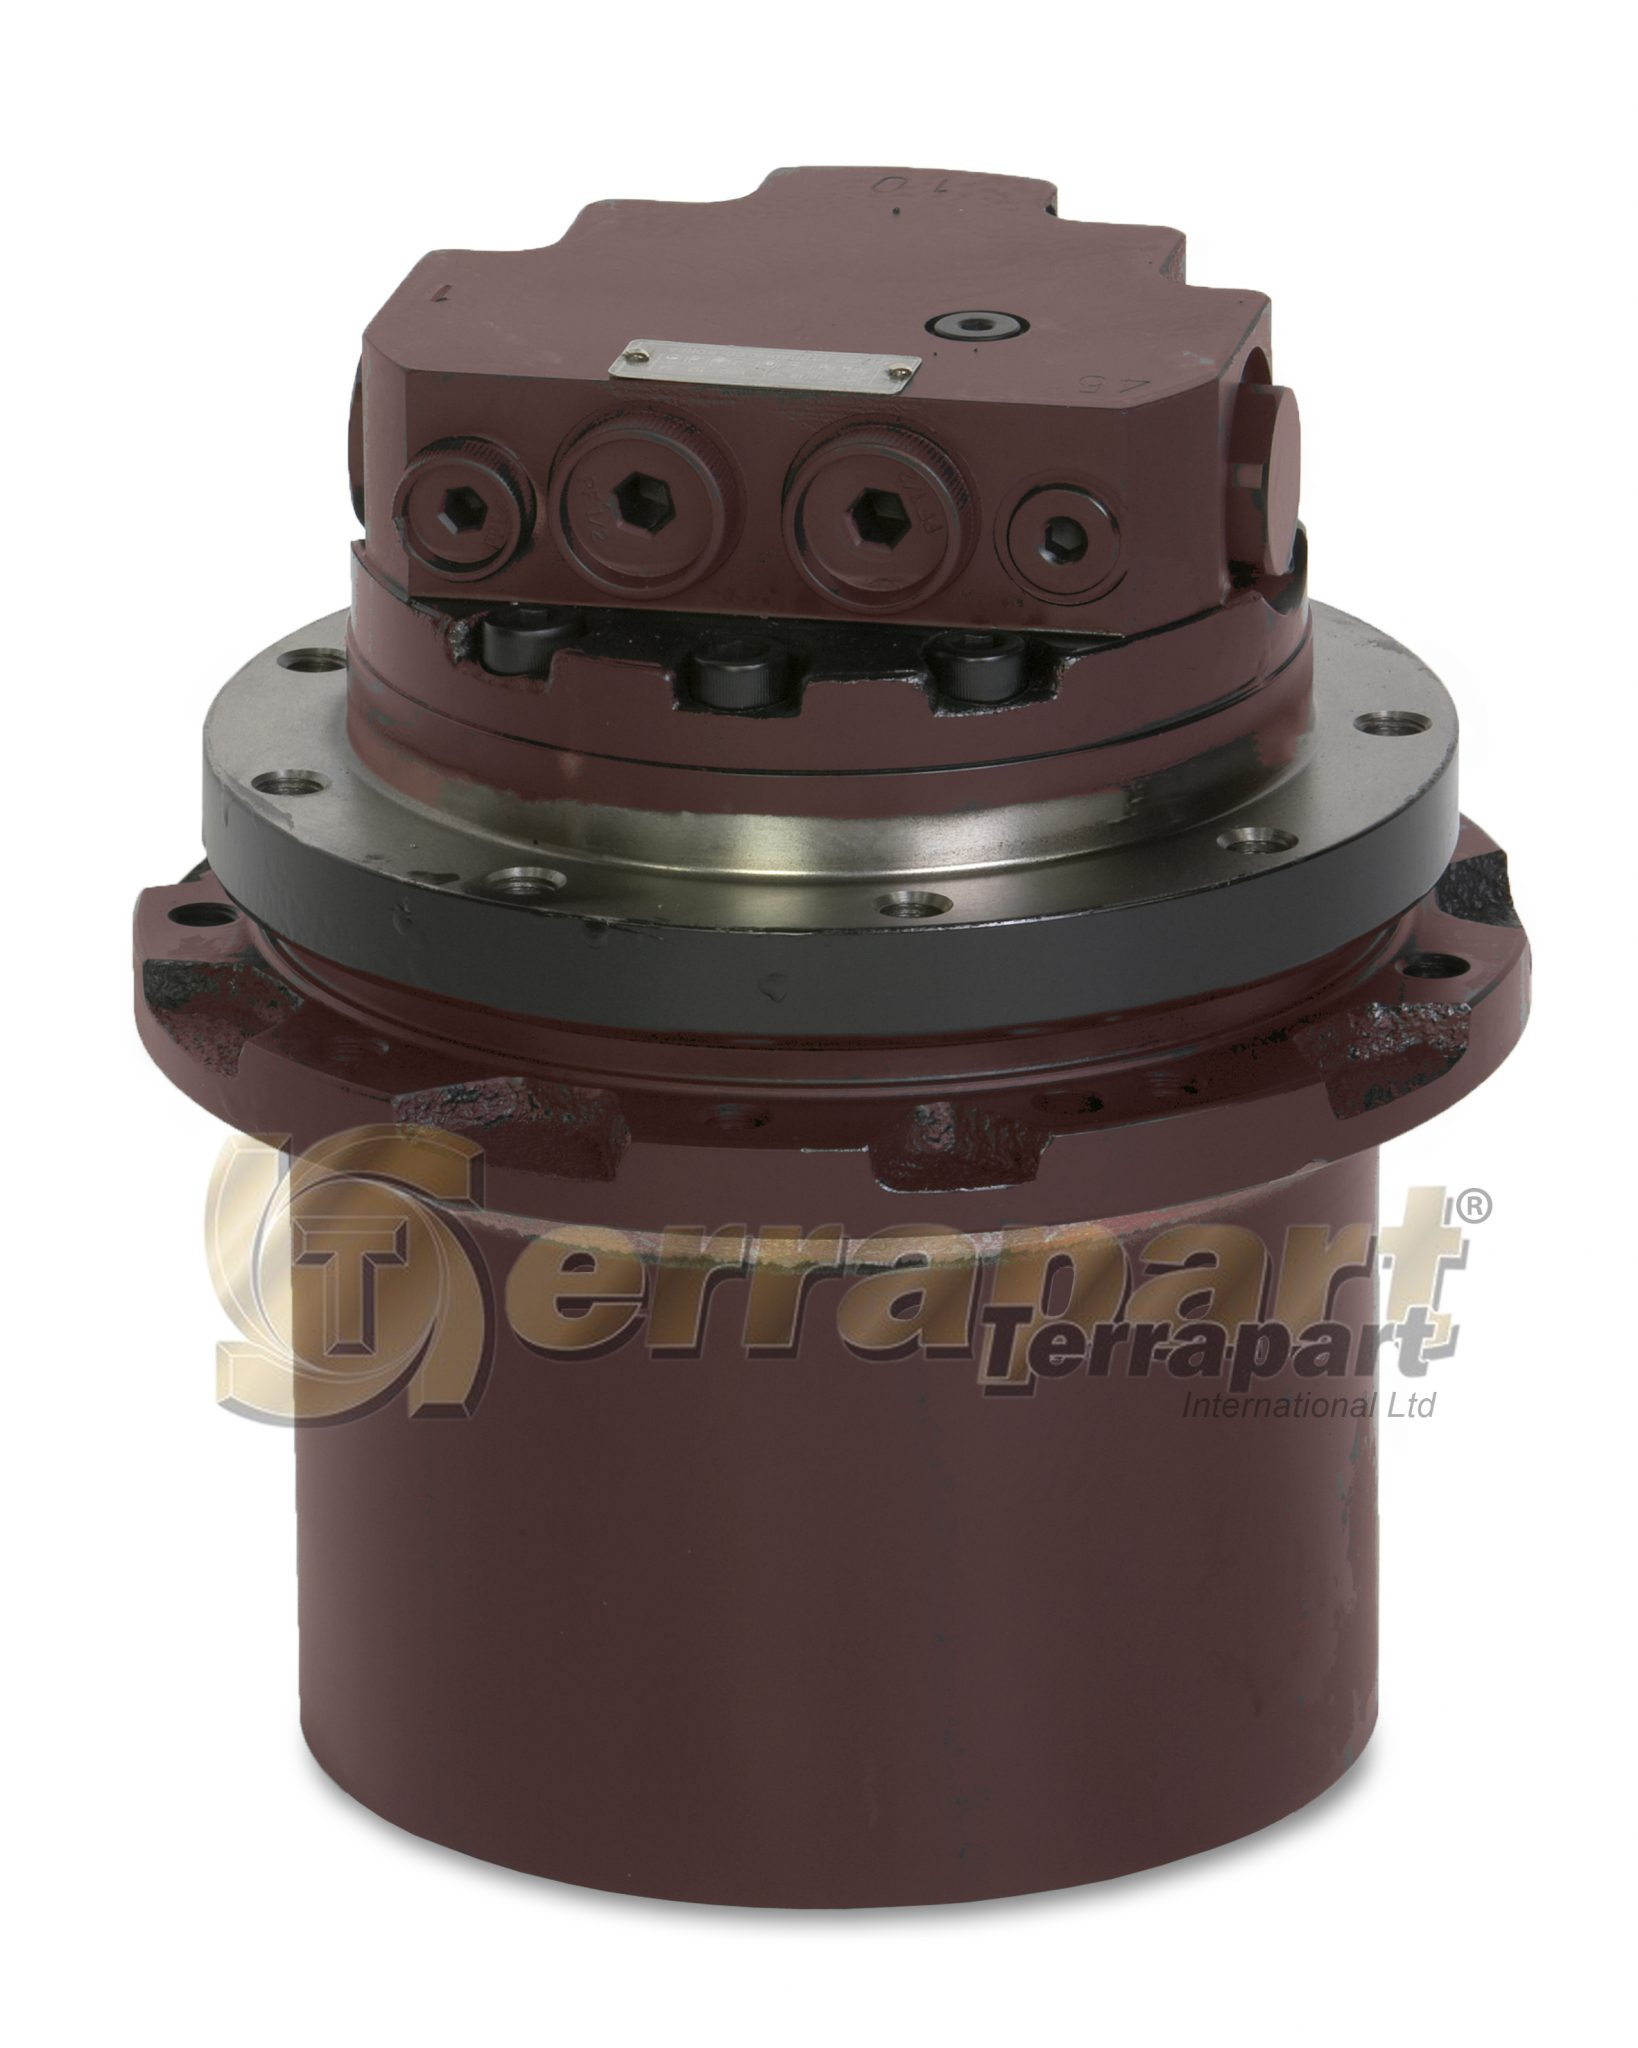 Kubota D1005 Wiring Diagram Basic Guide D1105 Fuel Filter Get Free Image About Diesel Engine Manual And Specs